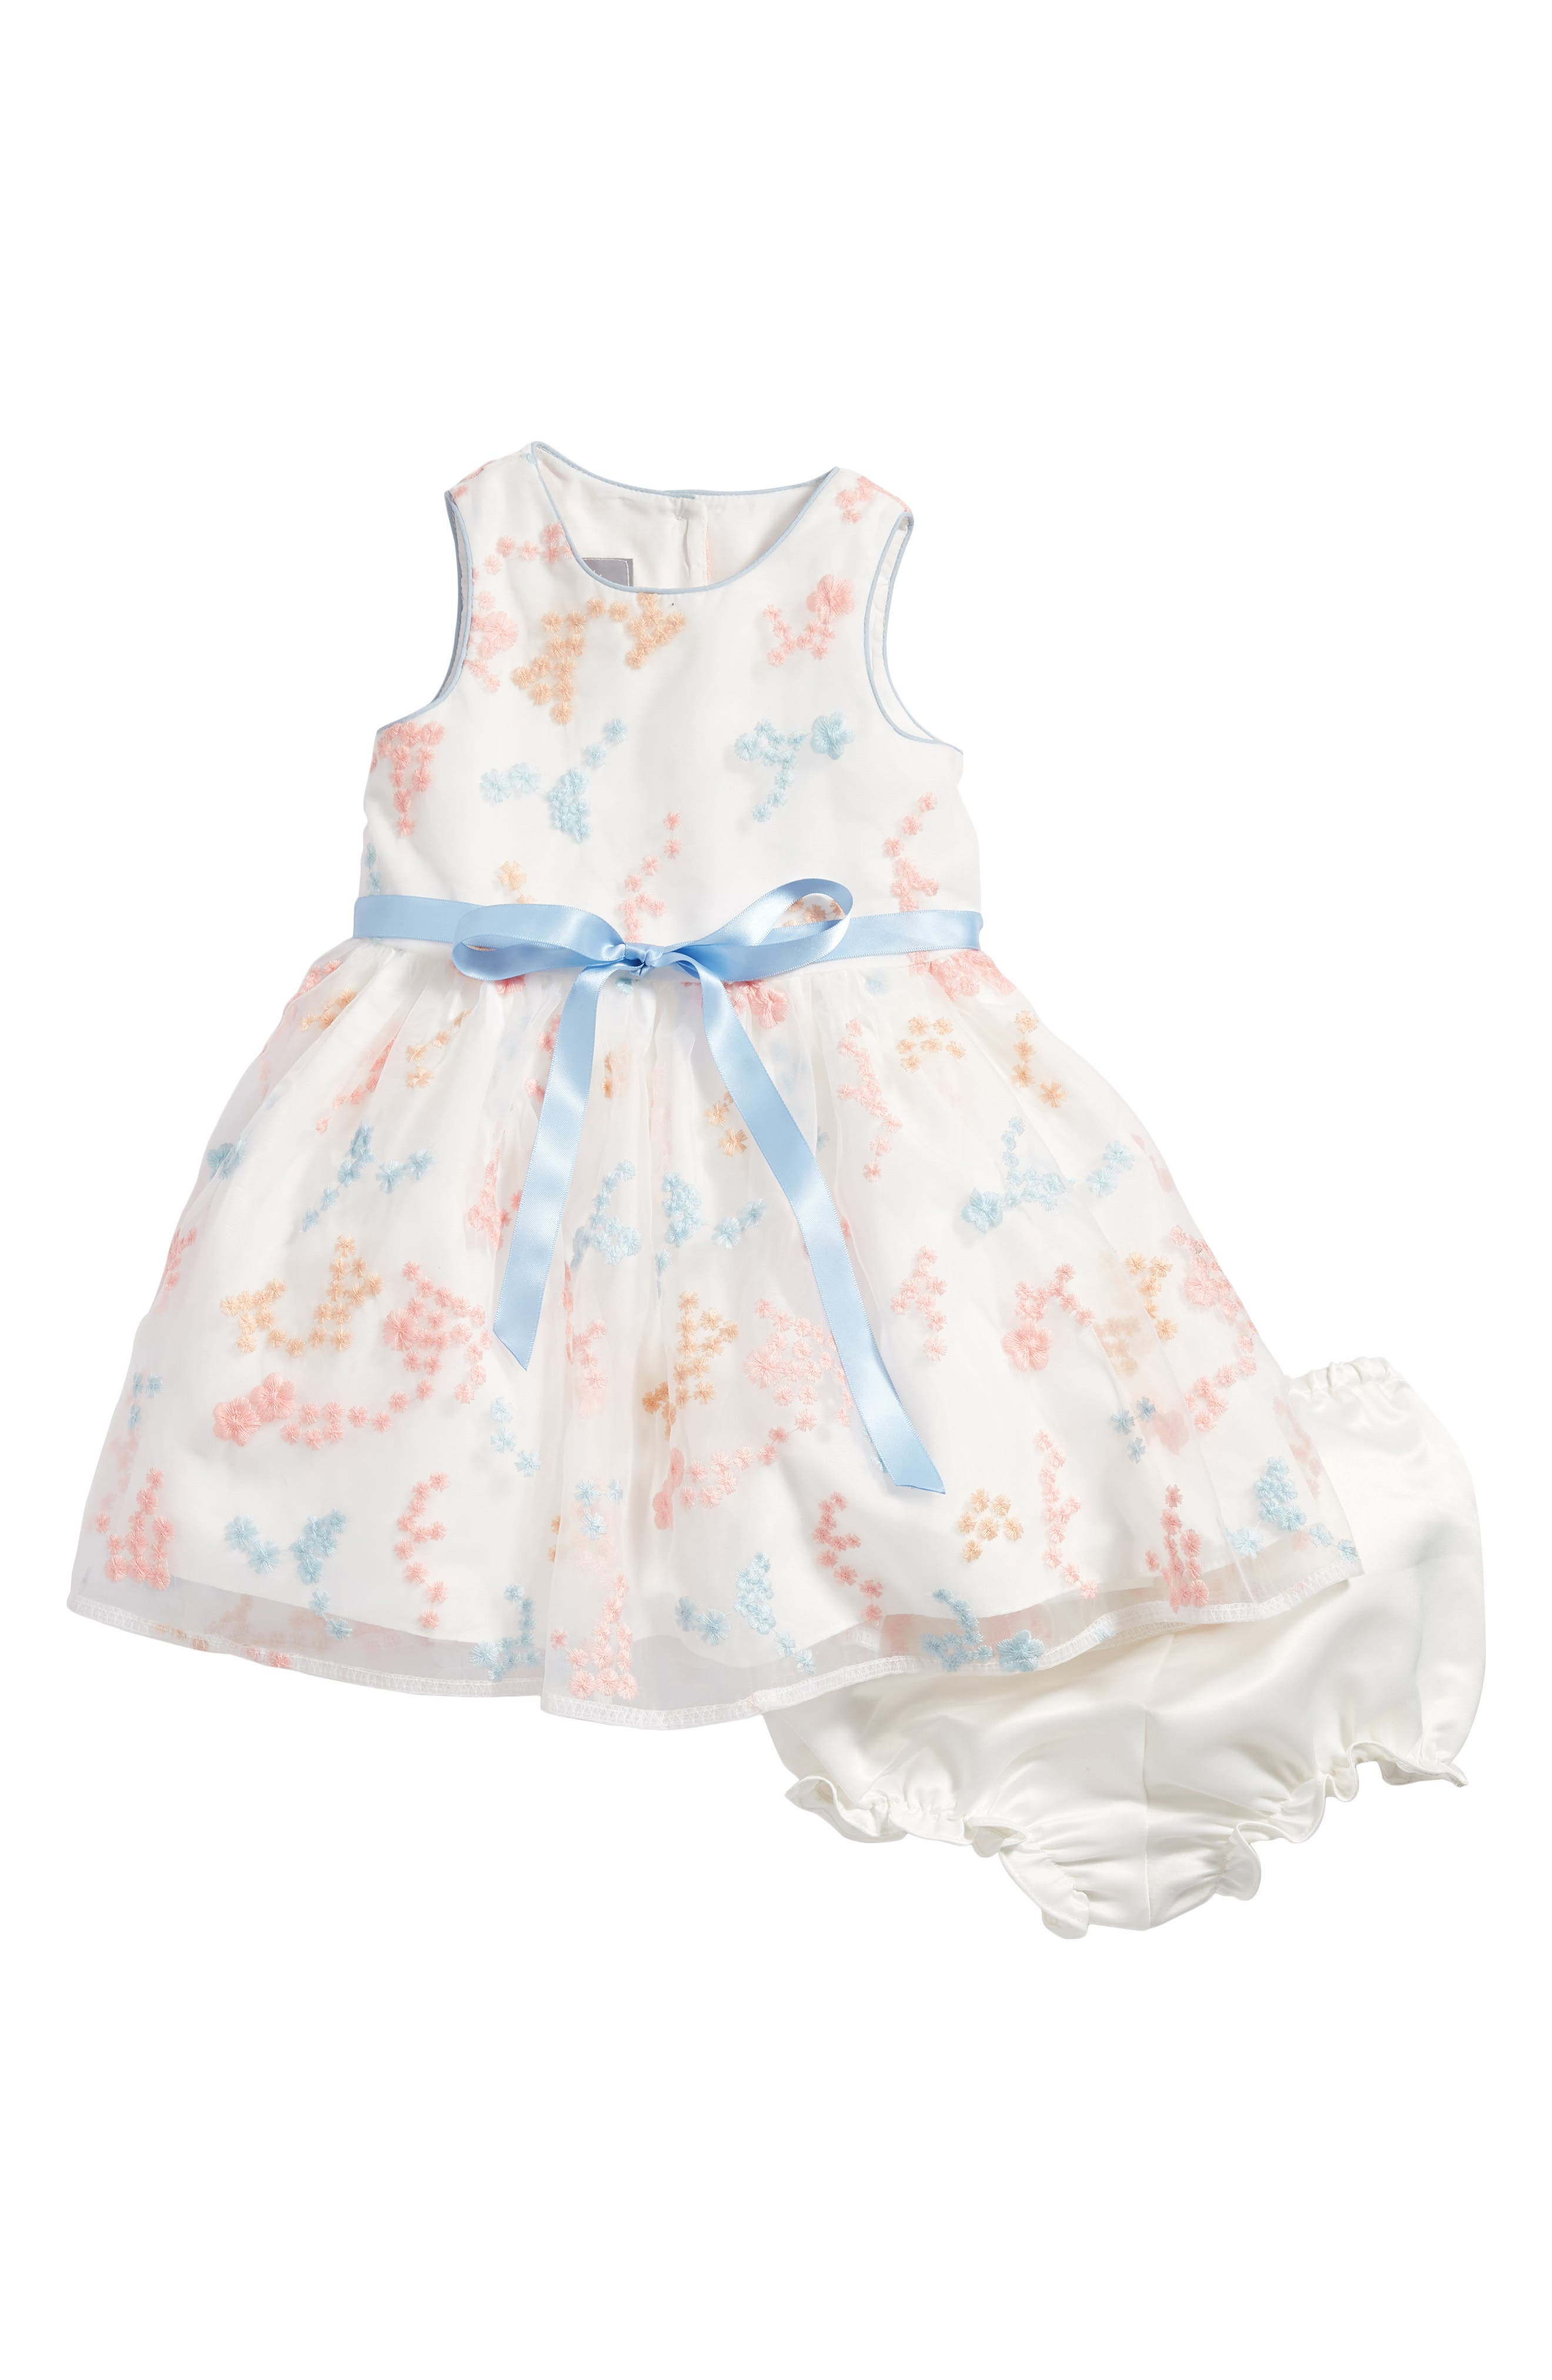 Embroidered Flower Dress,                             Main thumbnail 1, color,                             Ivory Multi